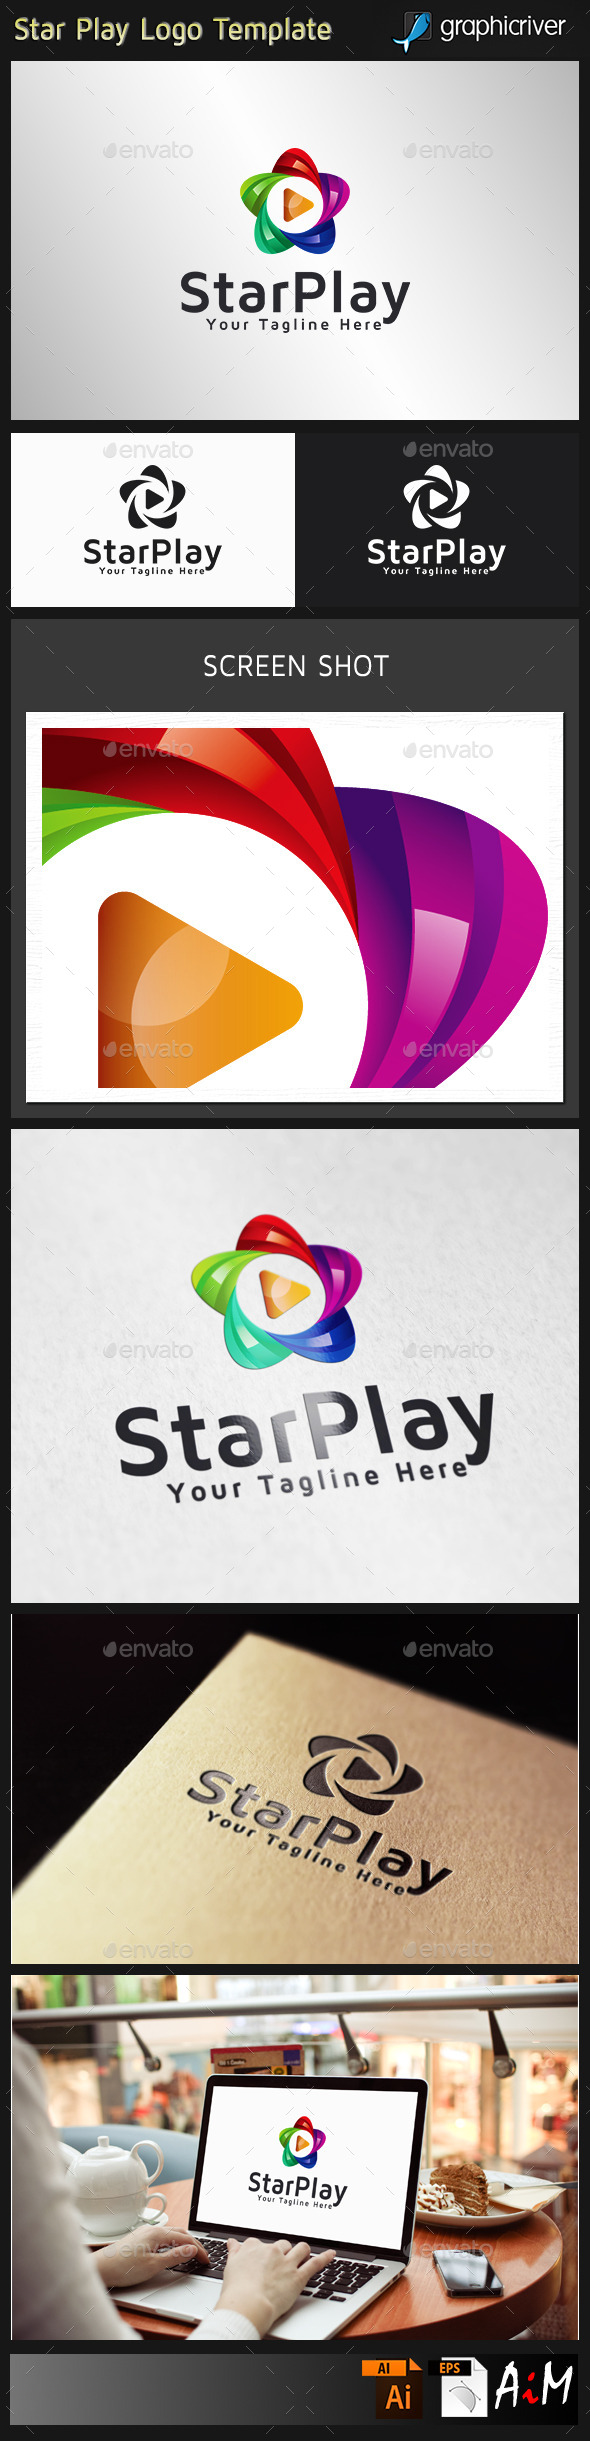 Star Play logo - 3d Abstract